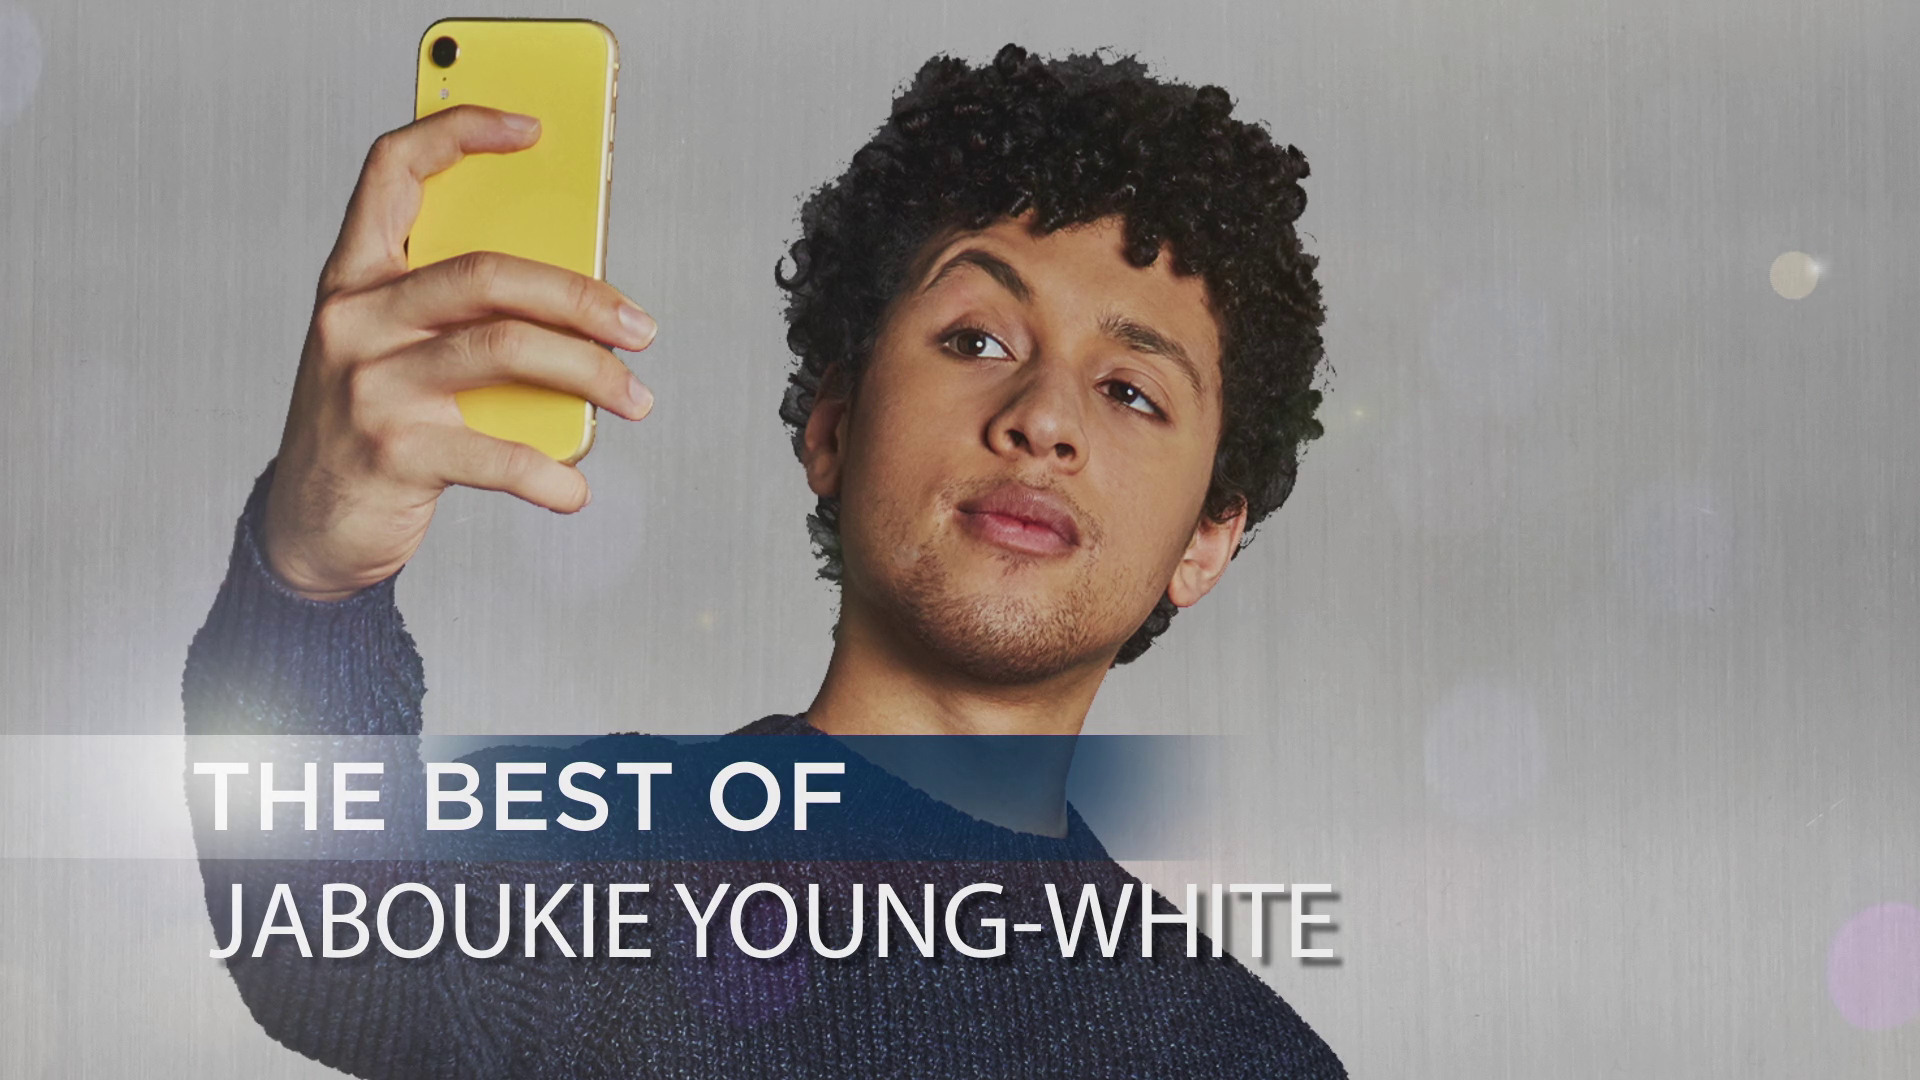 Your Moment of Them: The Best of Jaboukie Young-White